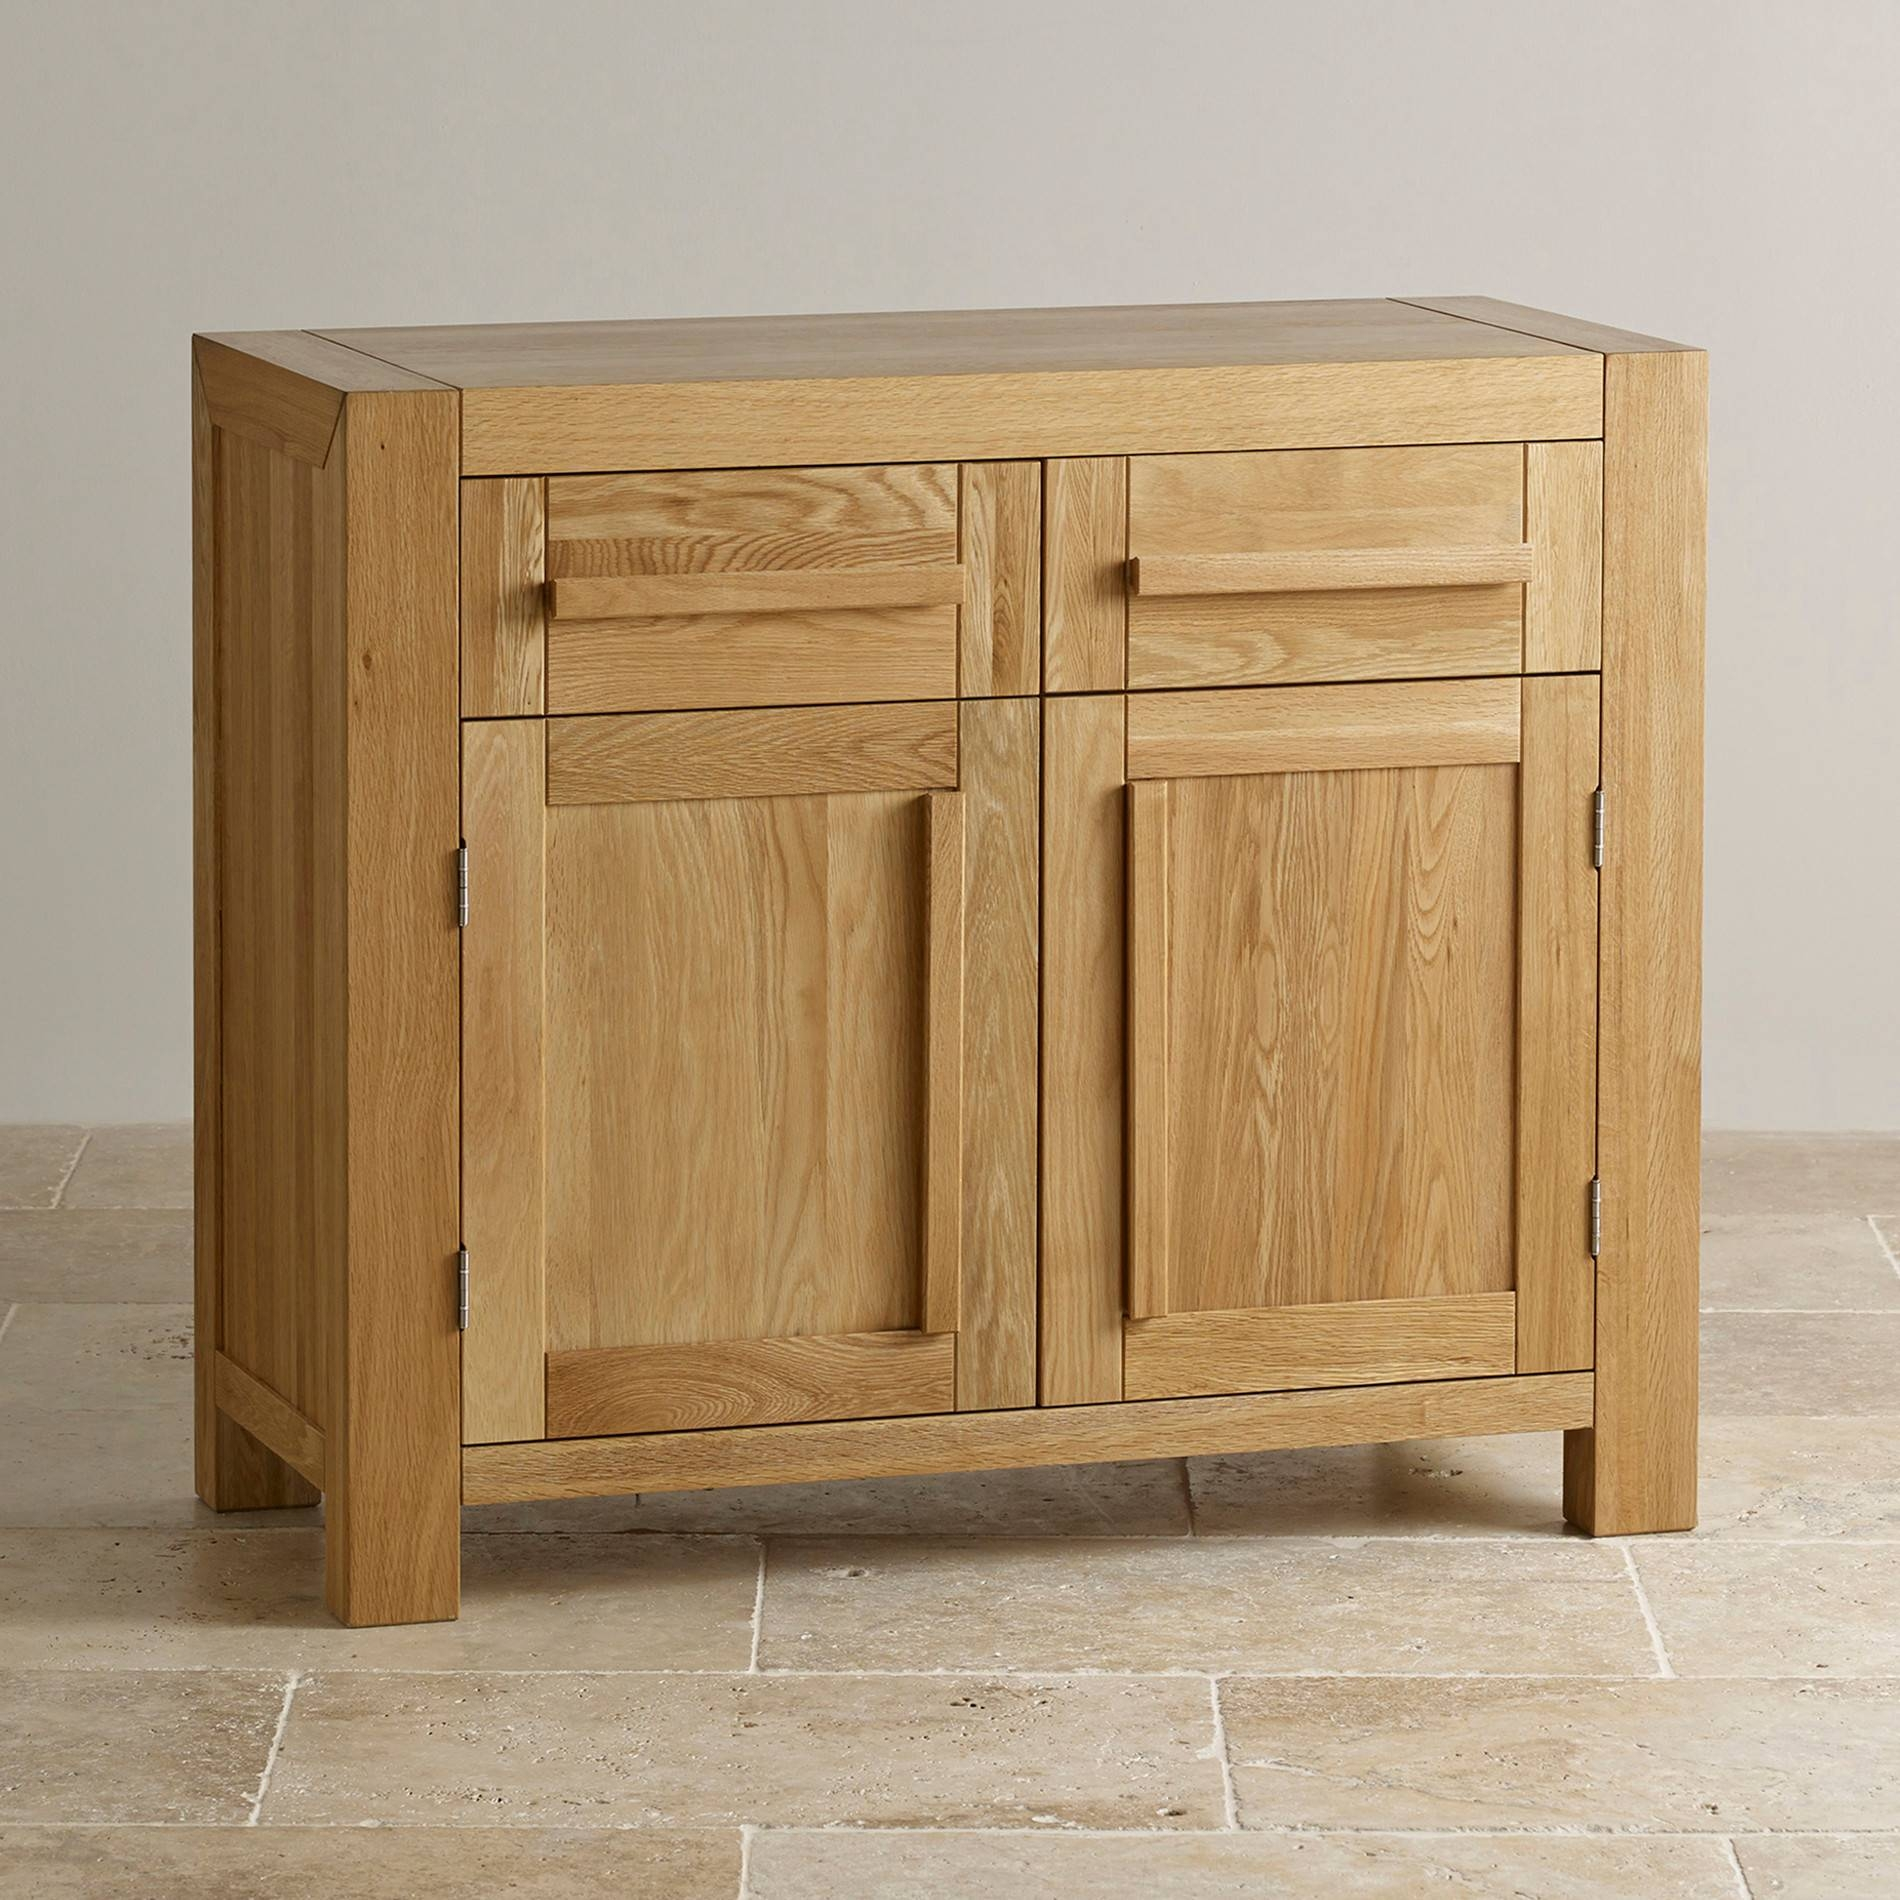 The Fresco Range - Natural Solid Oak Furniture with regard to Oak Sideboards For Sale (Image 28 of 30)